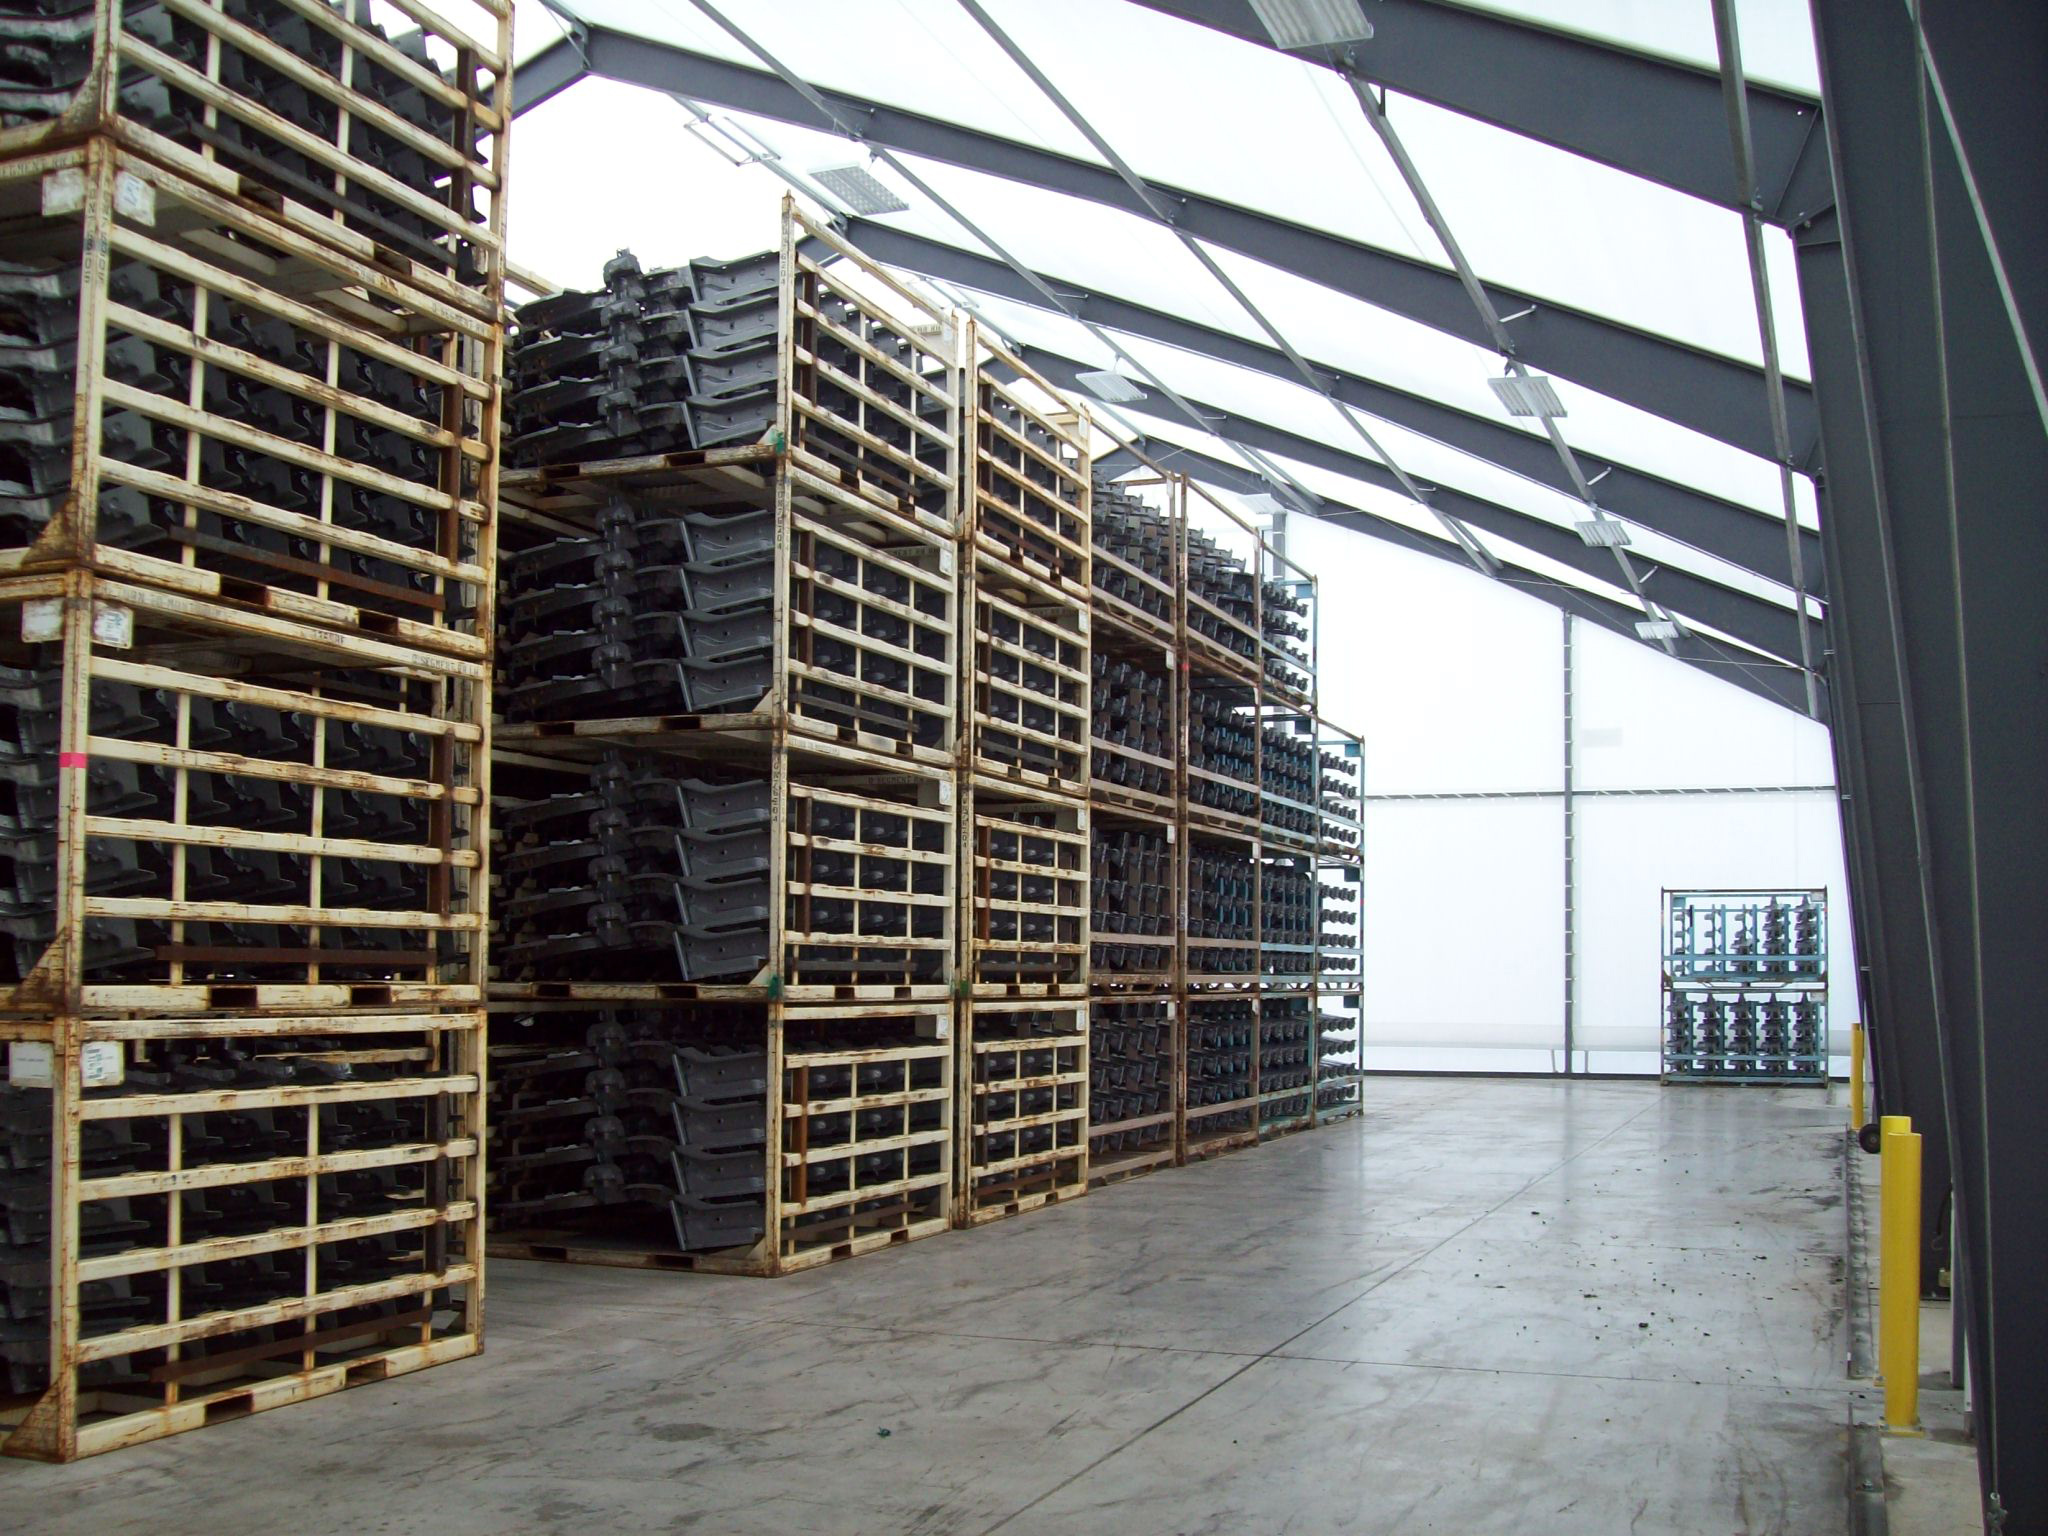 fabric manufacturing warehouse